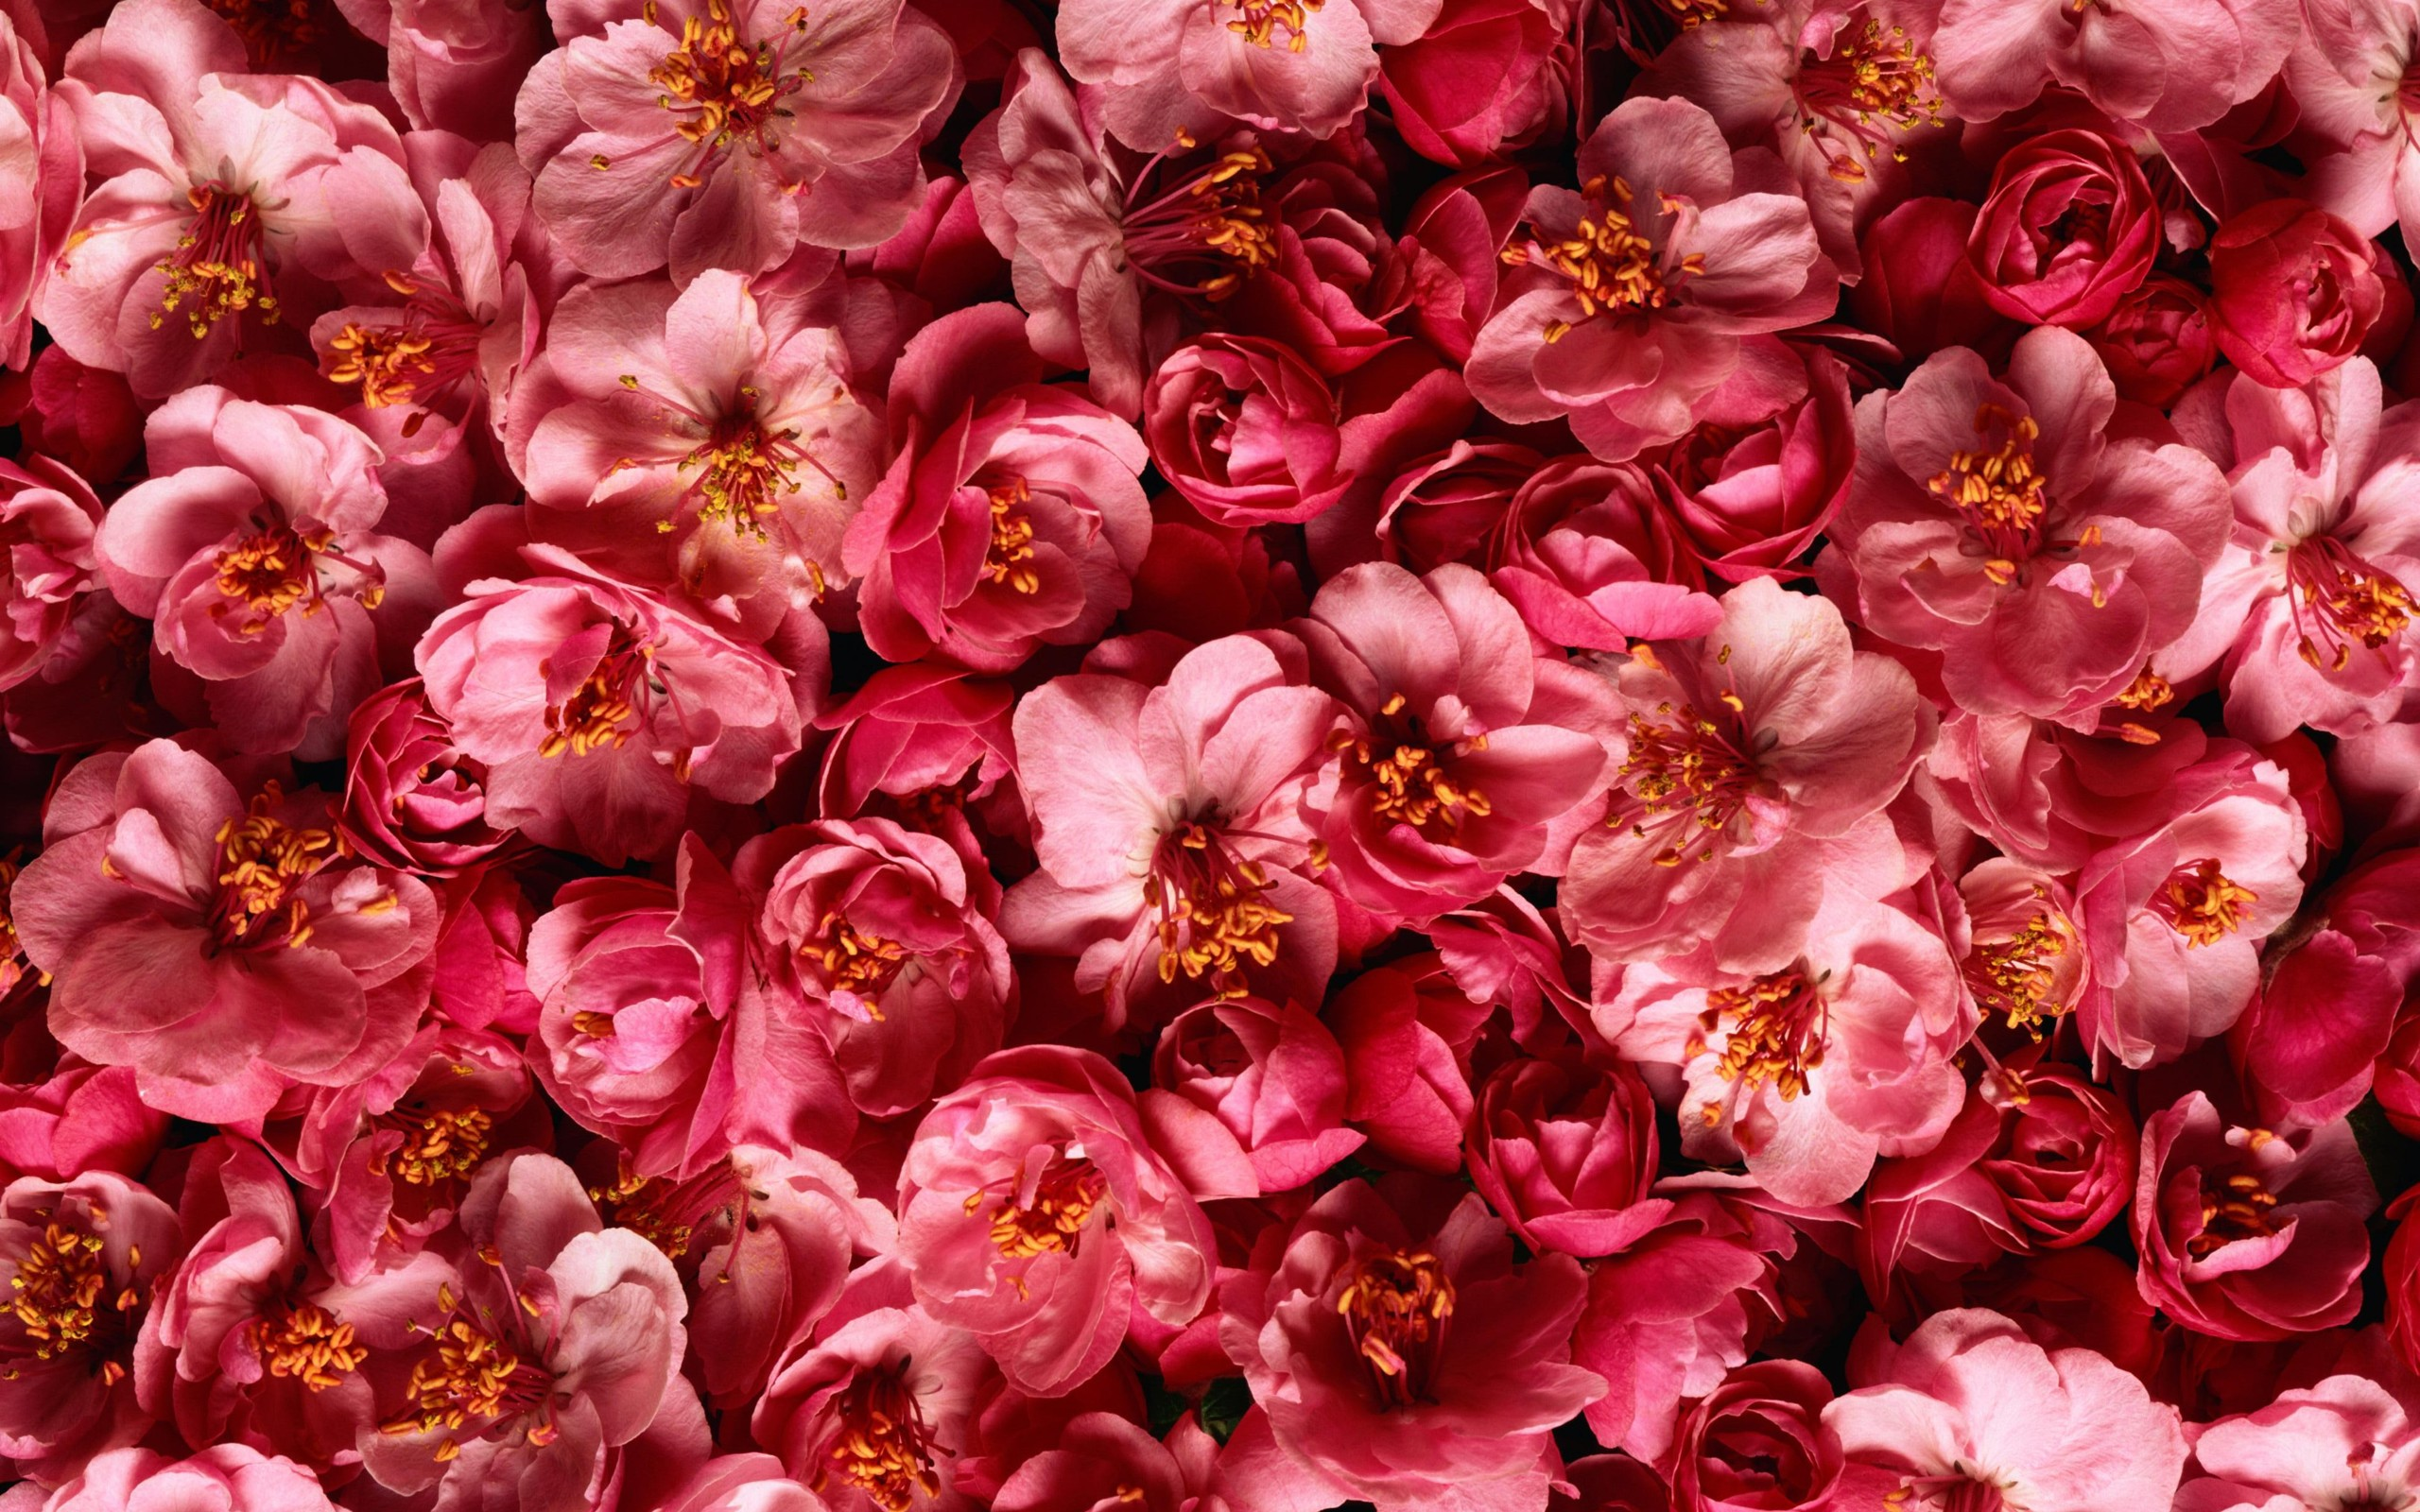 Red Flowers Pink Plants Hd Wallpapersjpg 2560x1600